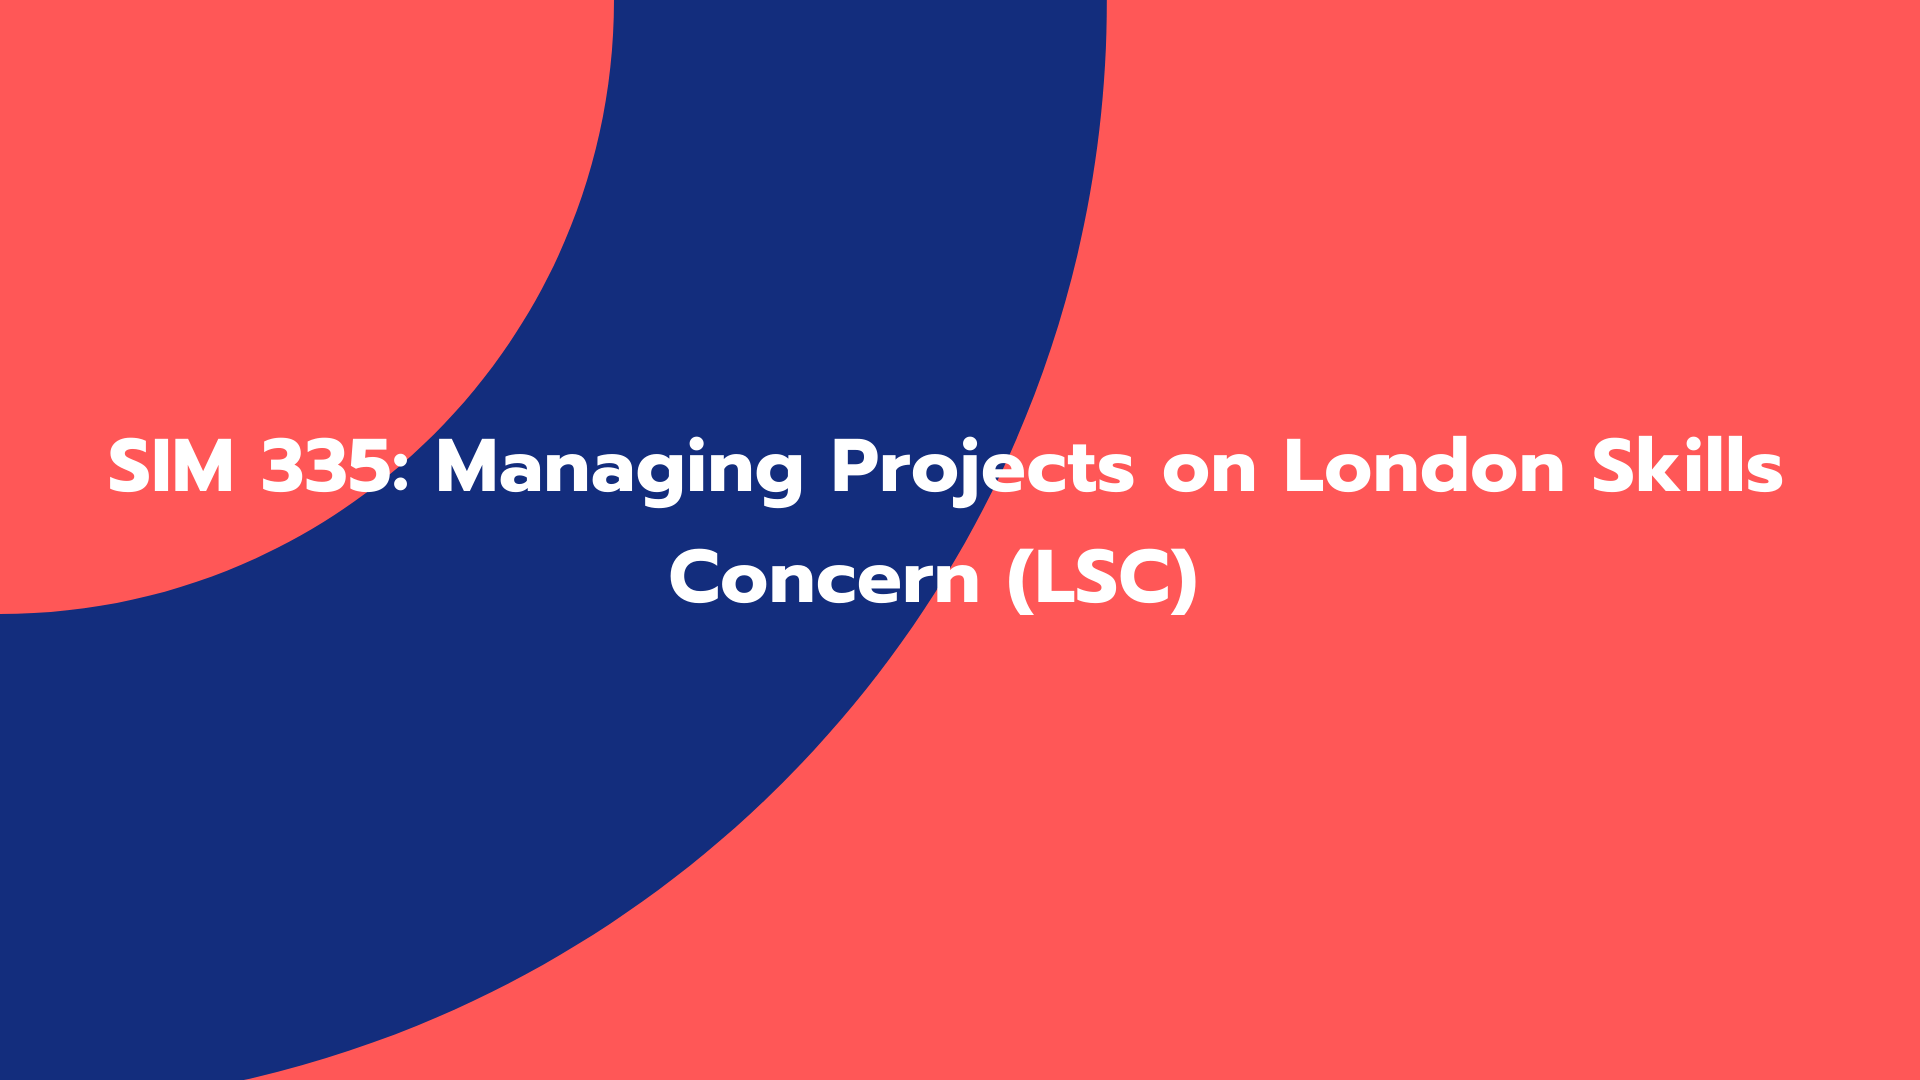 SIM 335: Managing Projects on London Skills Concern (LSC)